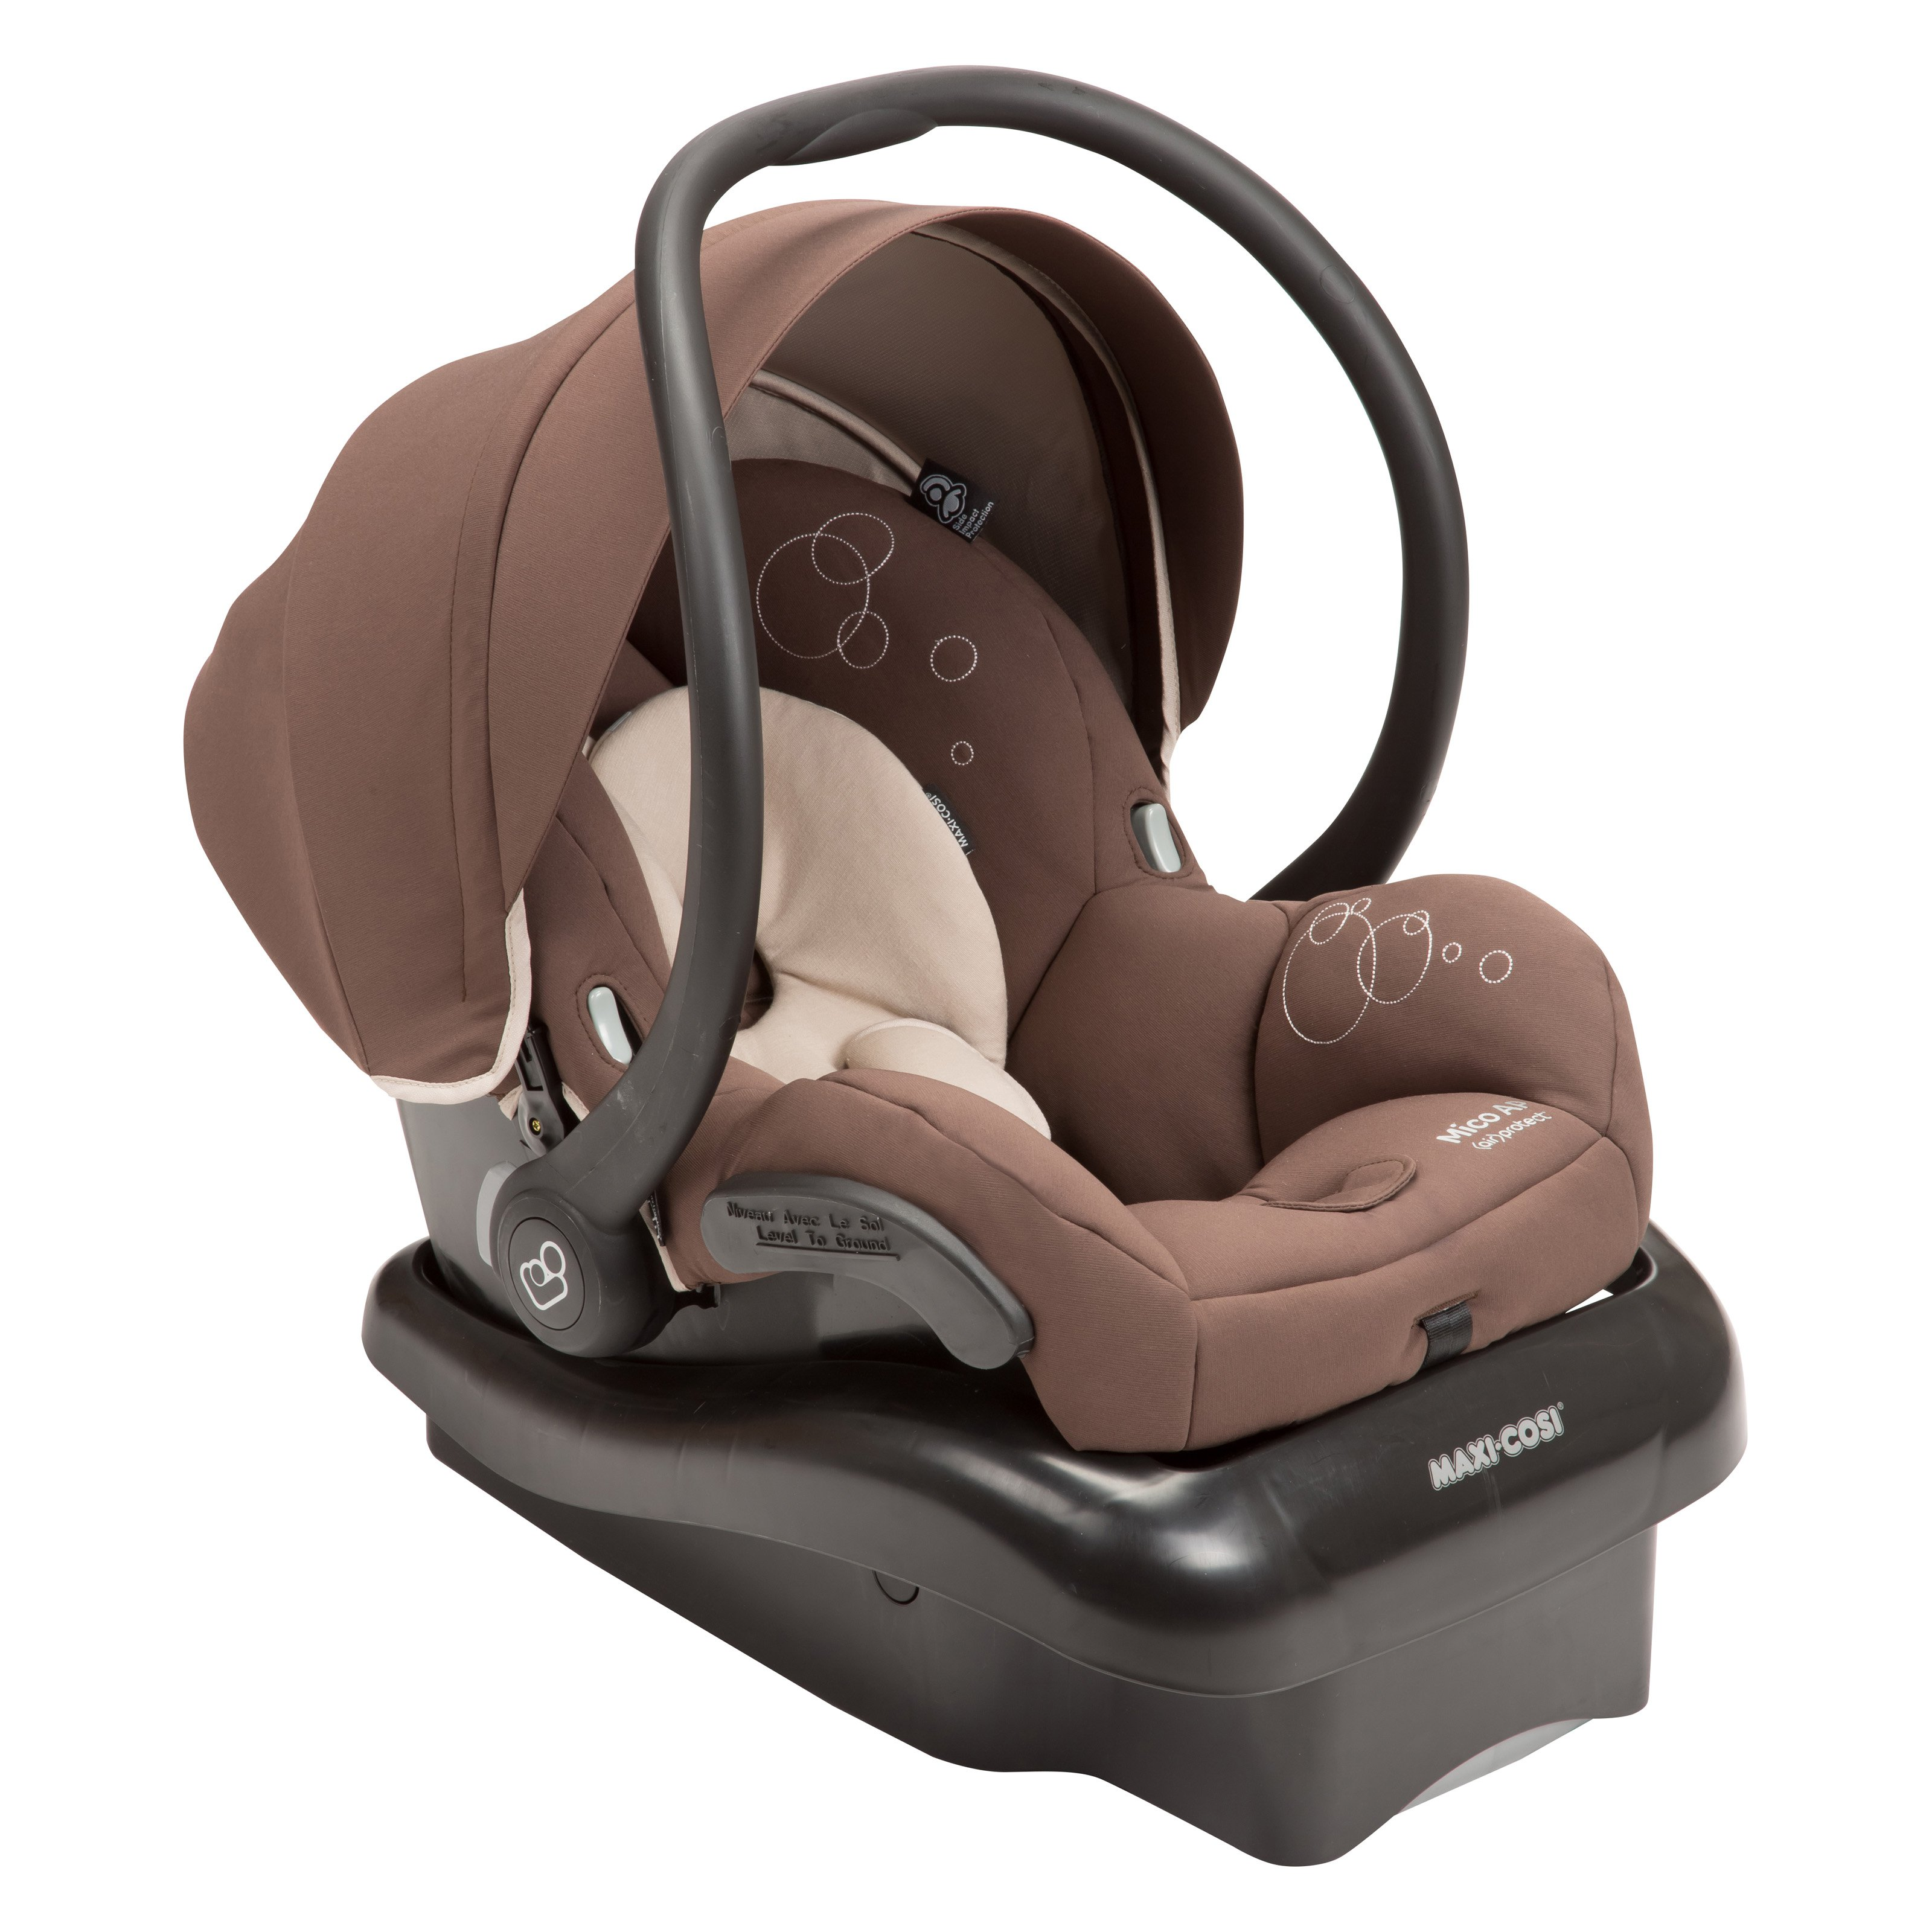 Maxi-Cosi Mico AP Infant Car Seat - Milk Chocolate